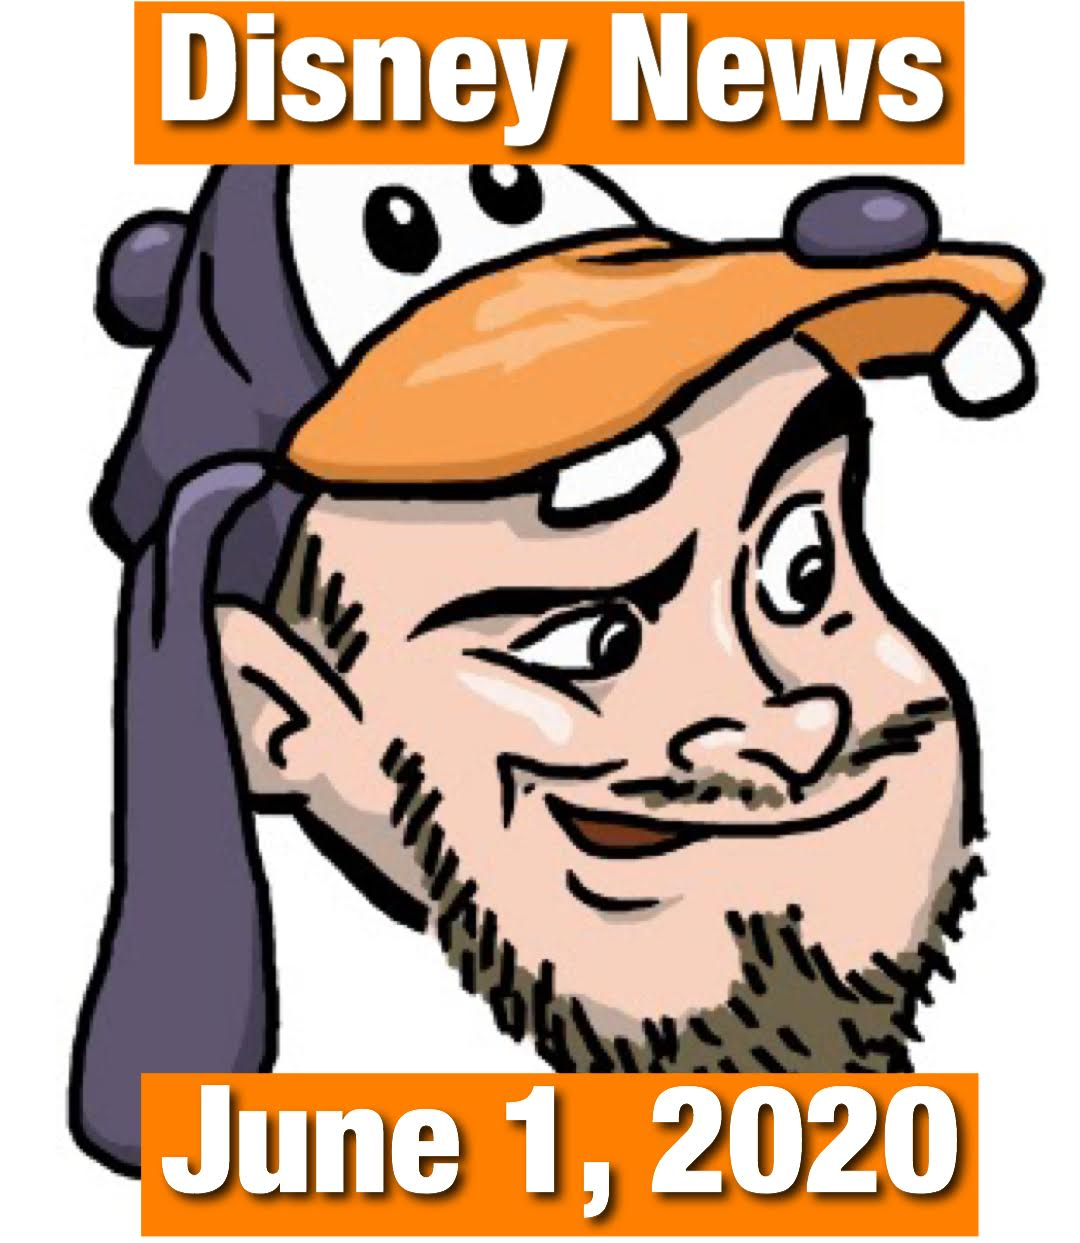 Disney News for 6/1/2020